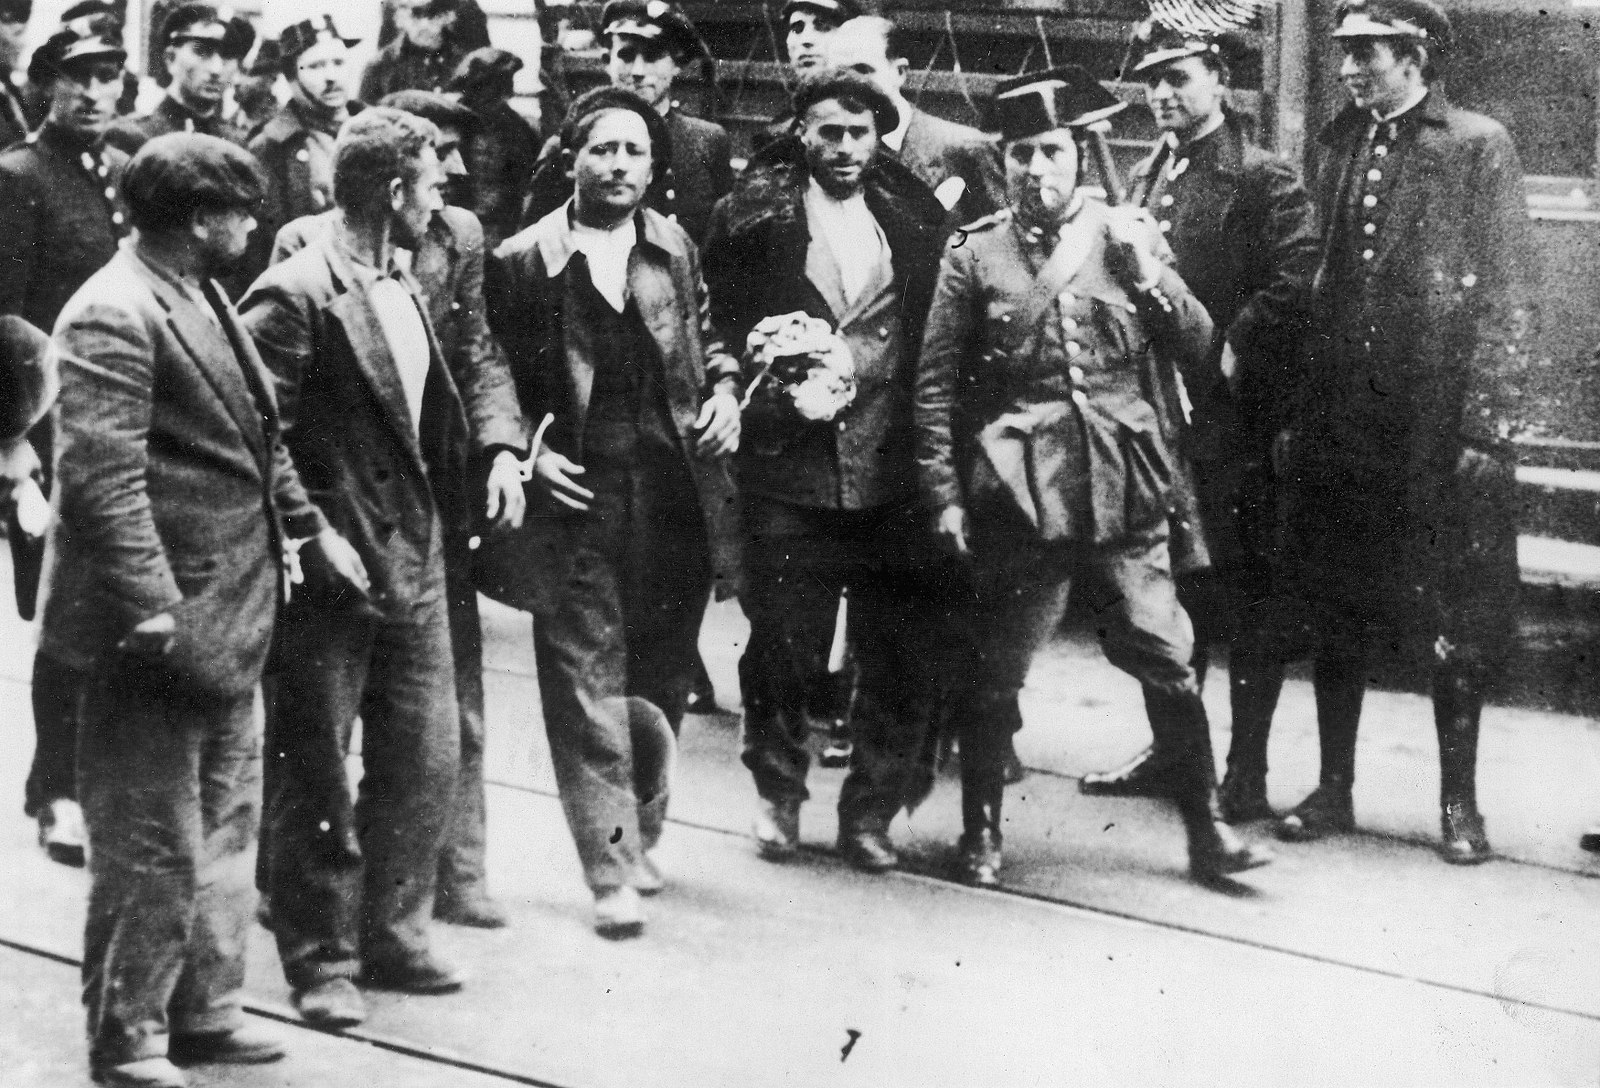 Black and white showing five men, tied together at the wrists, after being arrested. Policemen follow the men, or watch from the side of the road as they walk..